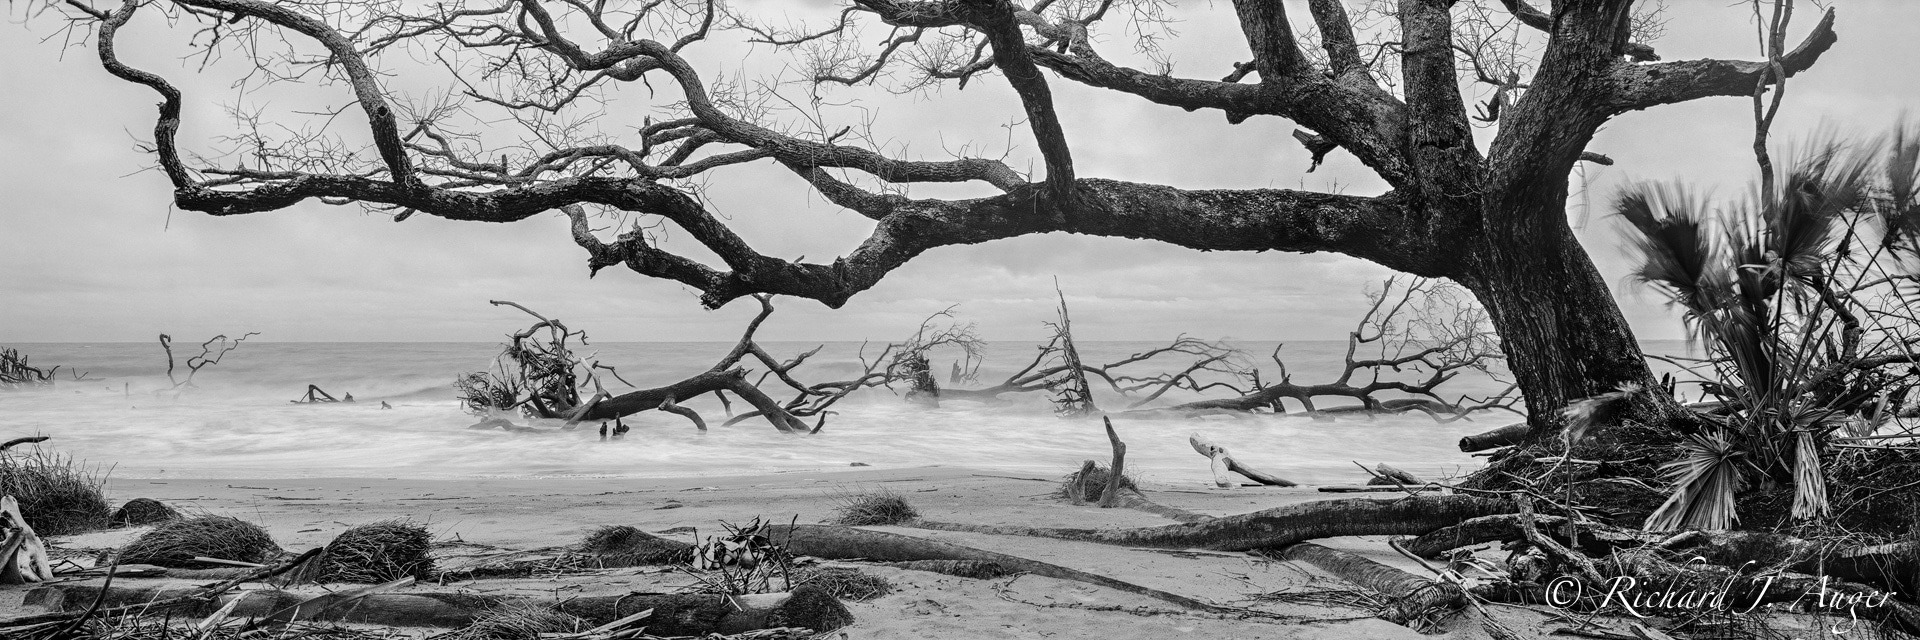 Hunting Island, South Carolina, driftwood, winter, beach, fog, long exposure, photograph, landscape, black and white, panorama